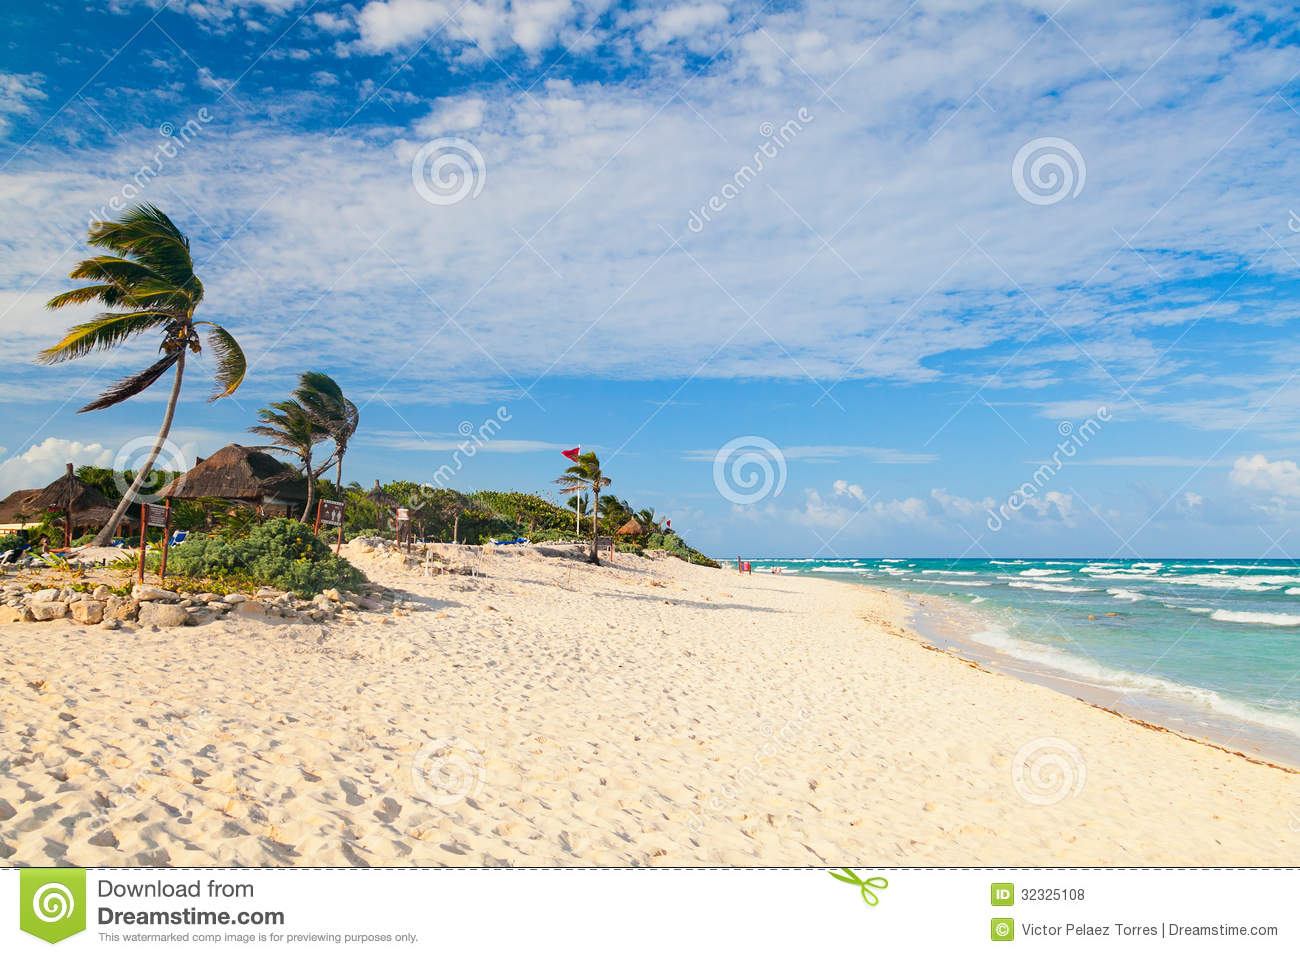 Caribbean Beach Royalty Free Stock Photos - Image: 32325108